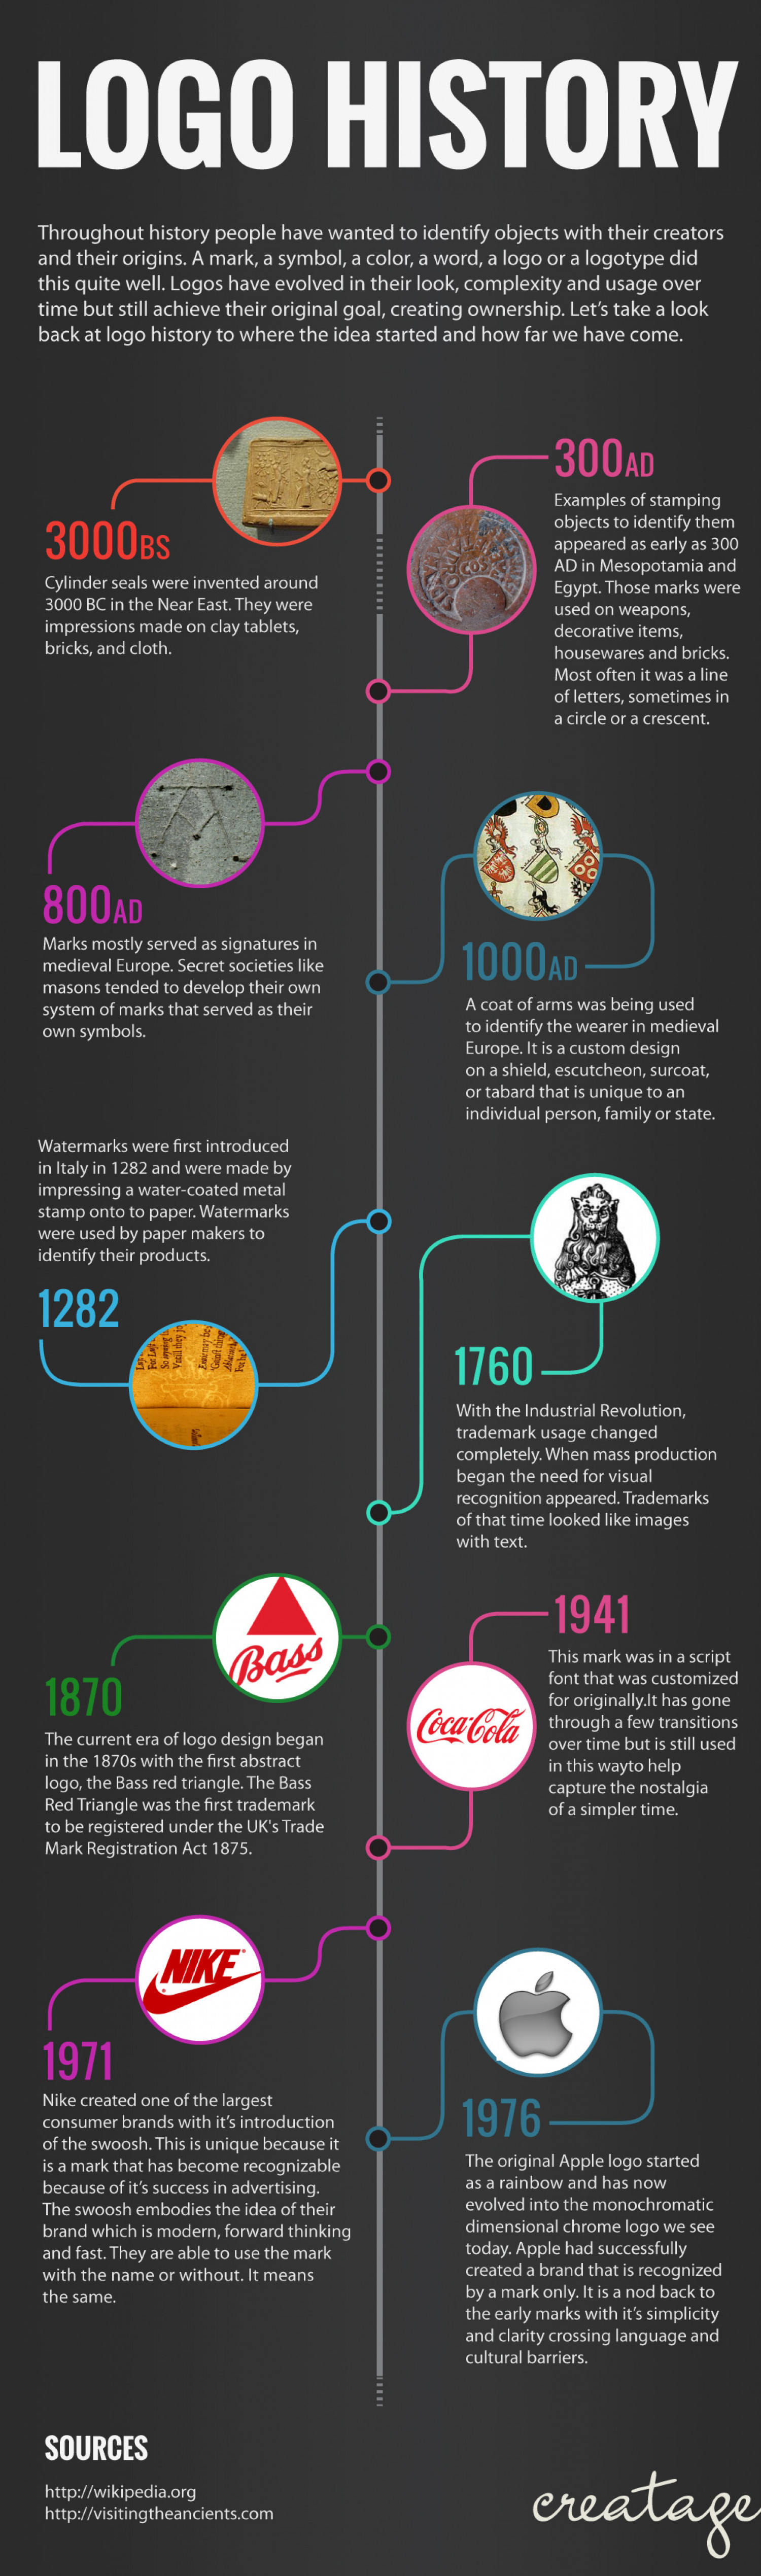 History of the Logo Design Visually